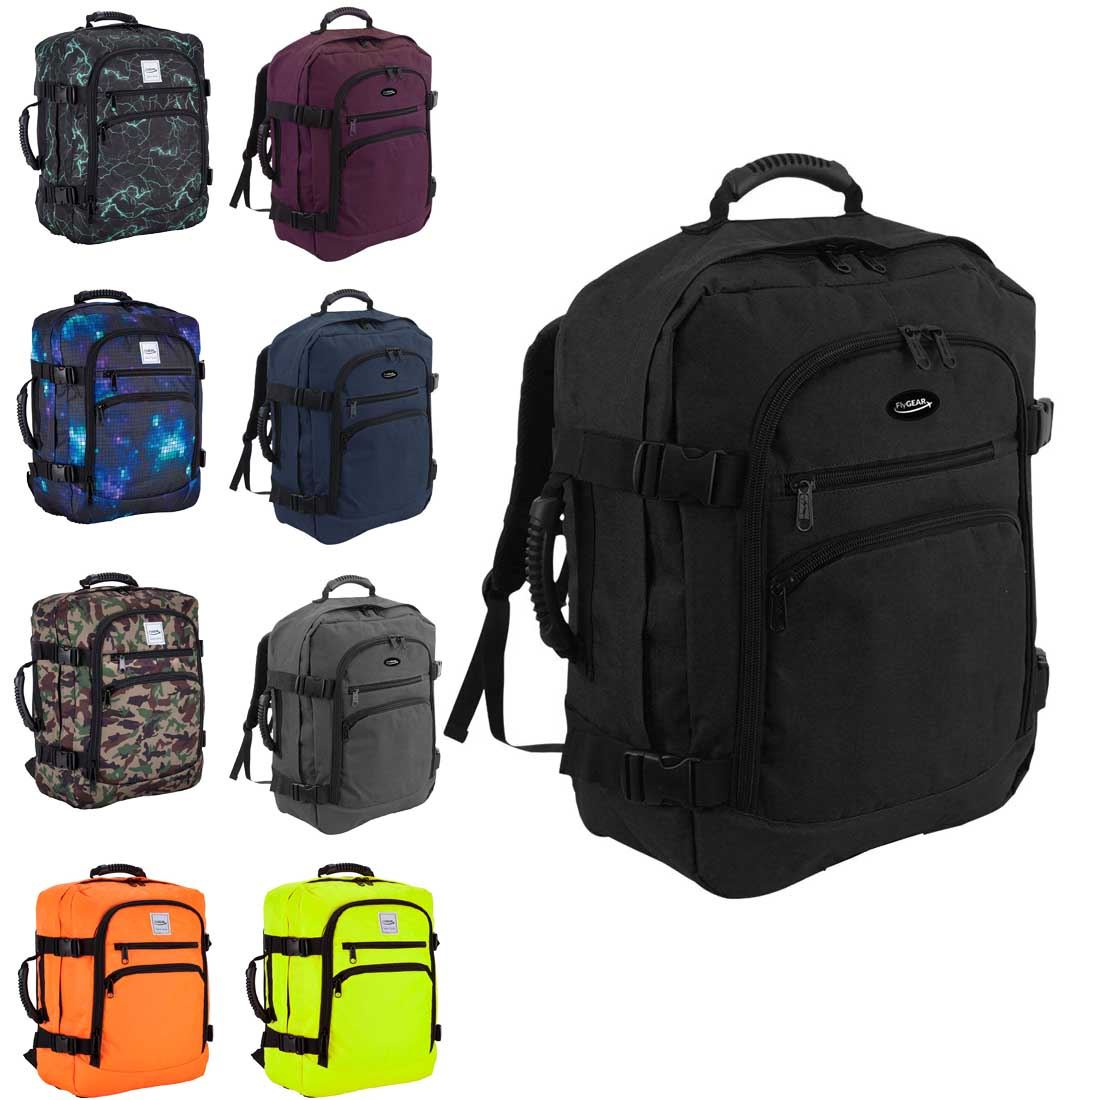 Lightweight Cabin Luggage Details About Flygear Cabin Hand Luggage Flight Backpack Rucksack Travel Holall Suitcase Bag